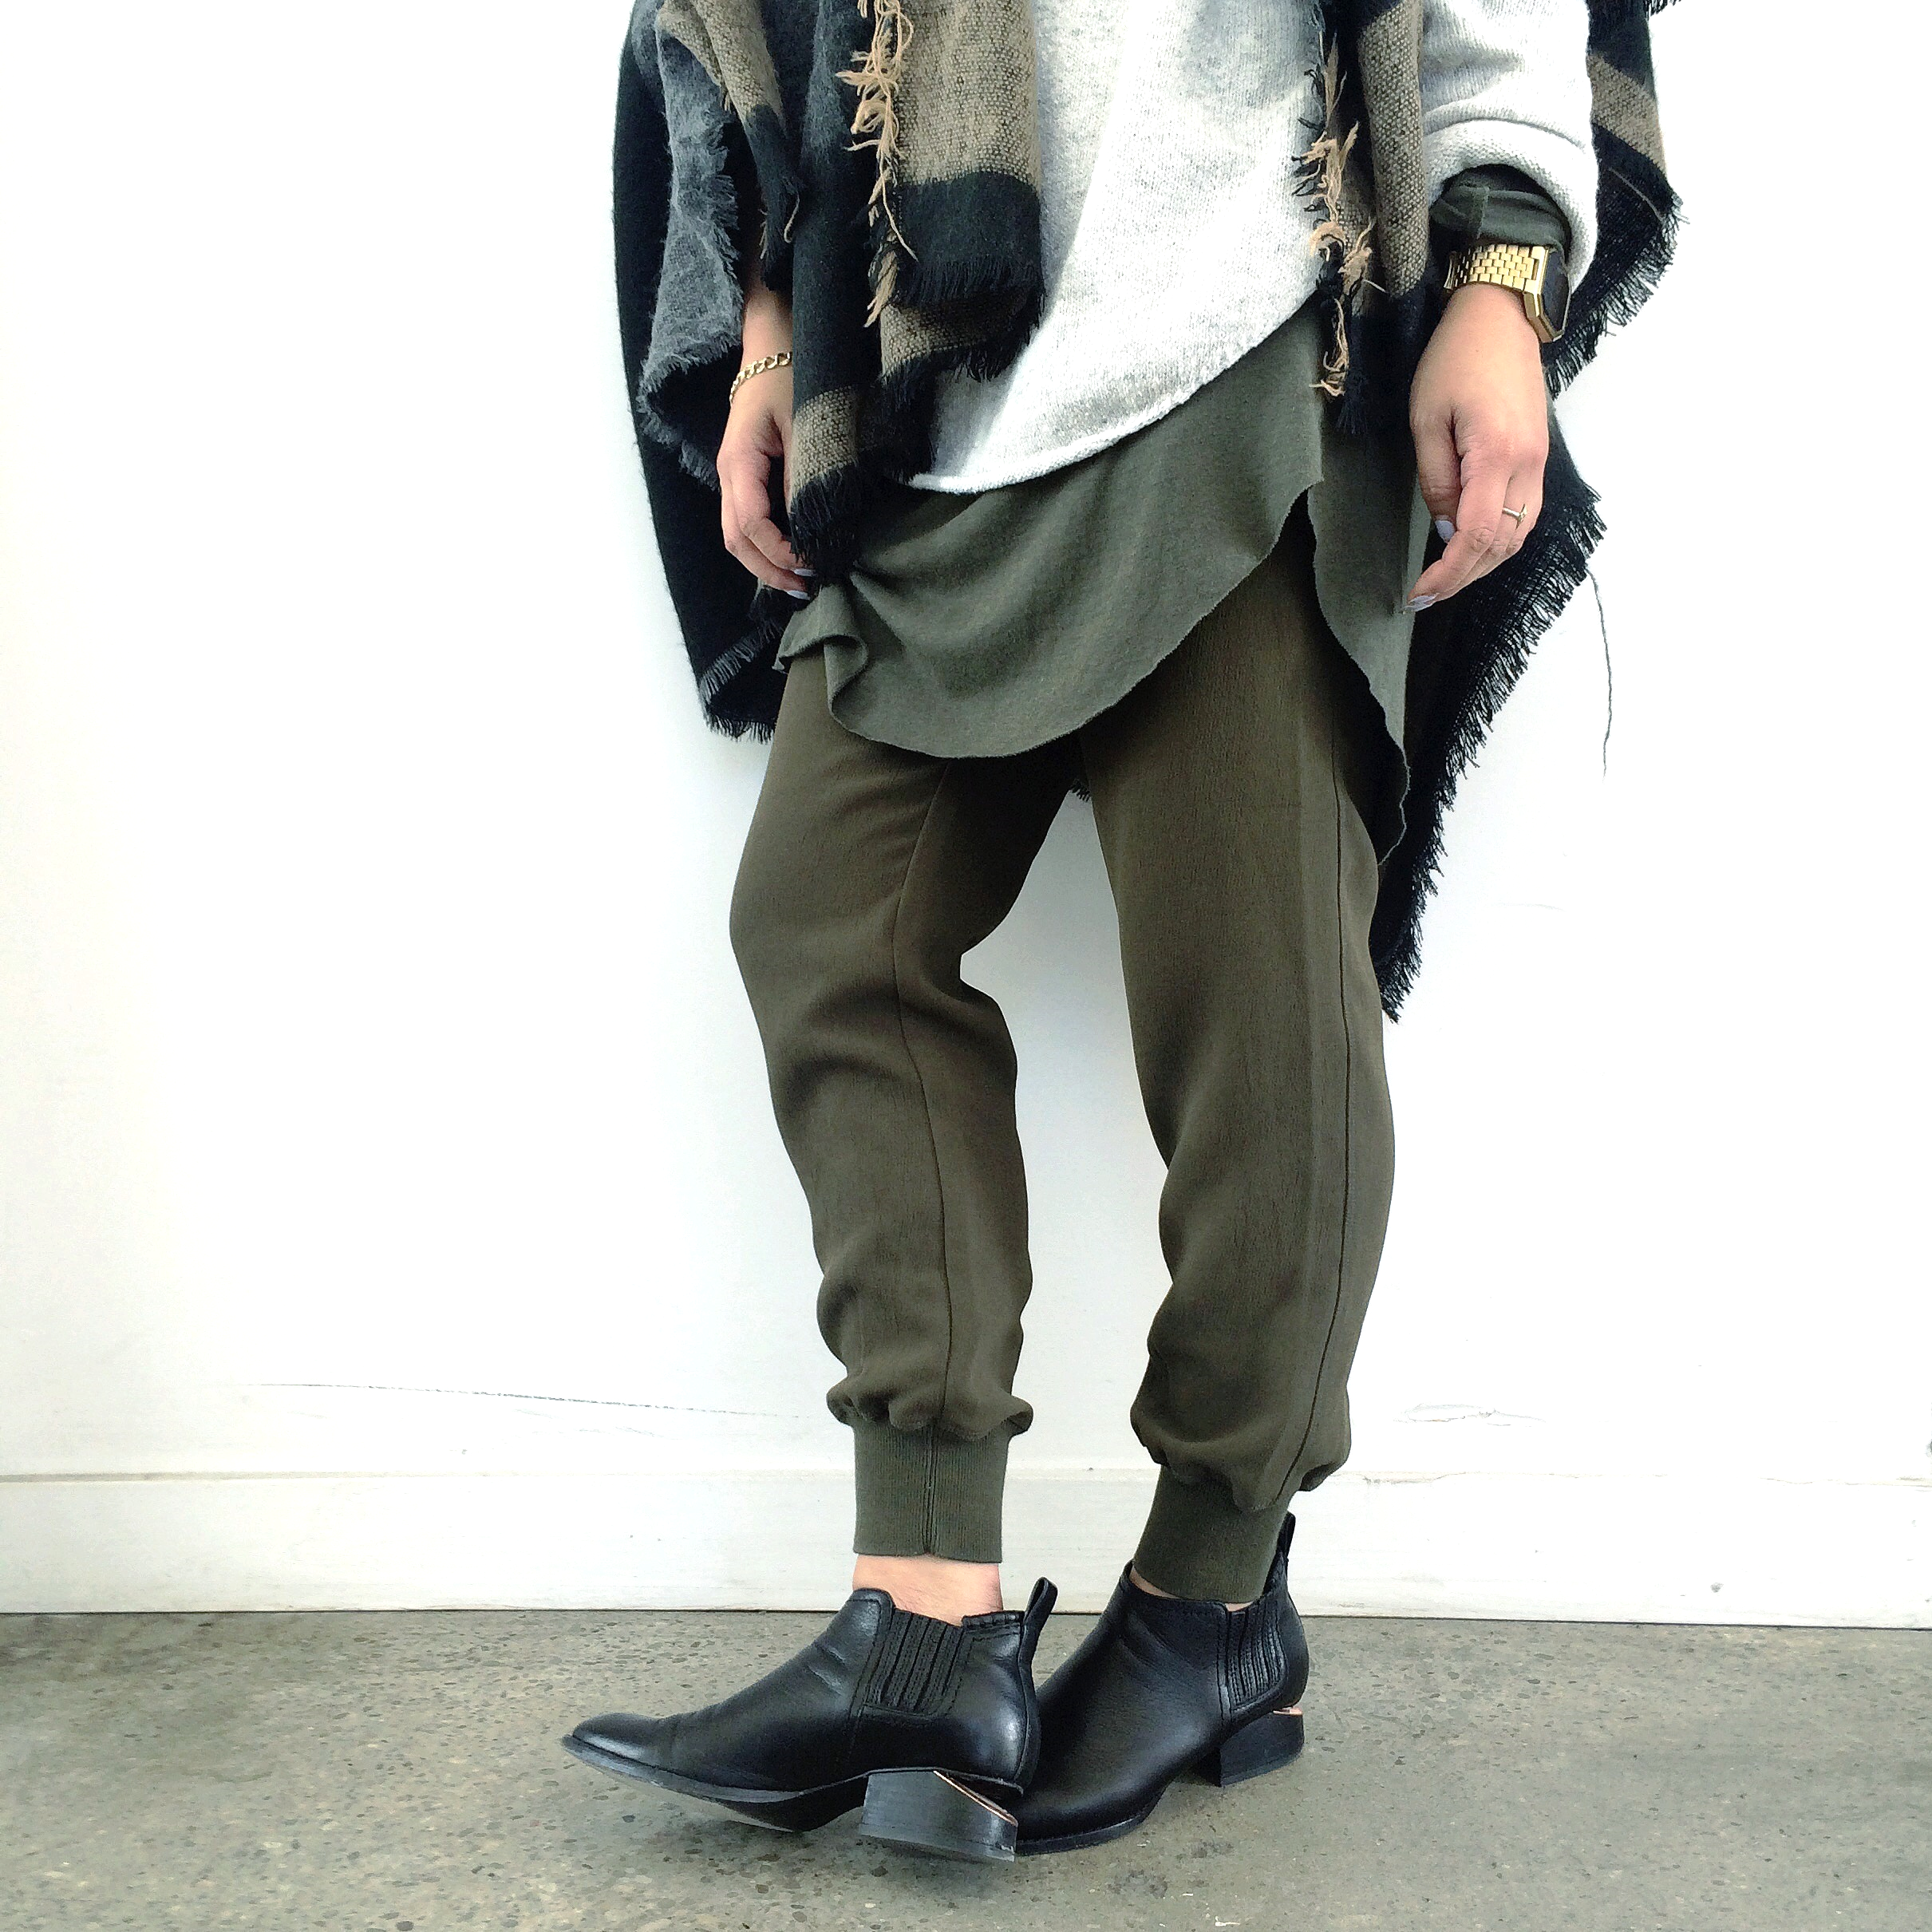 Scarf: Zara | Crewneck Sweater: Oak + Fort (men's) | Long-sleeve tee: Oak + Fort (men's) | Trousers: Aritzia | Boots: Alexander Wang